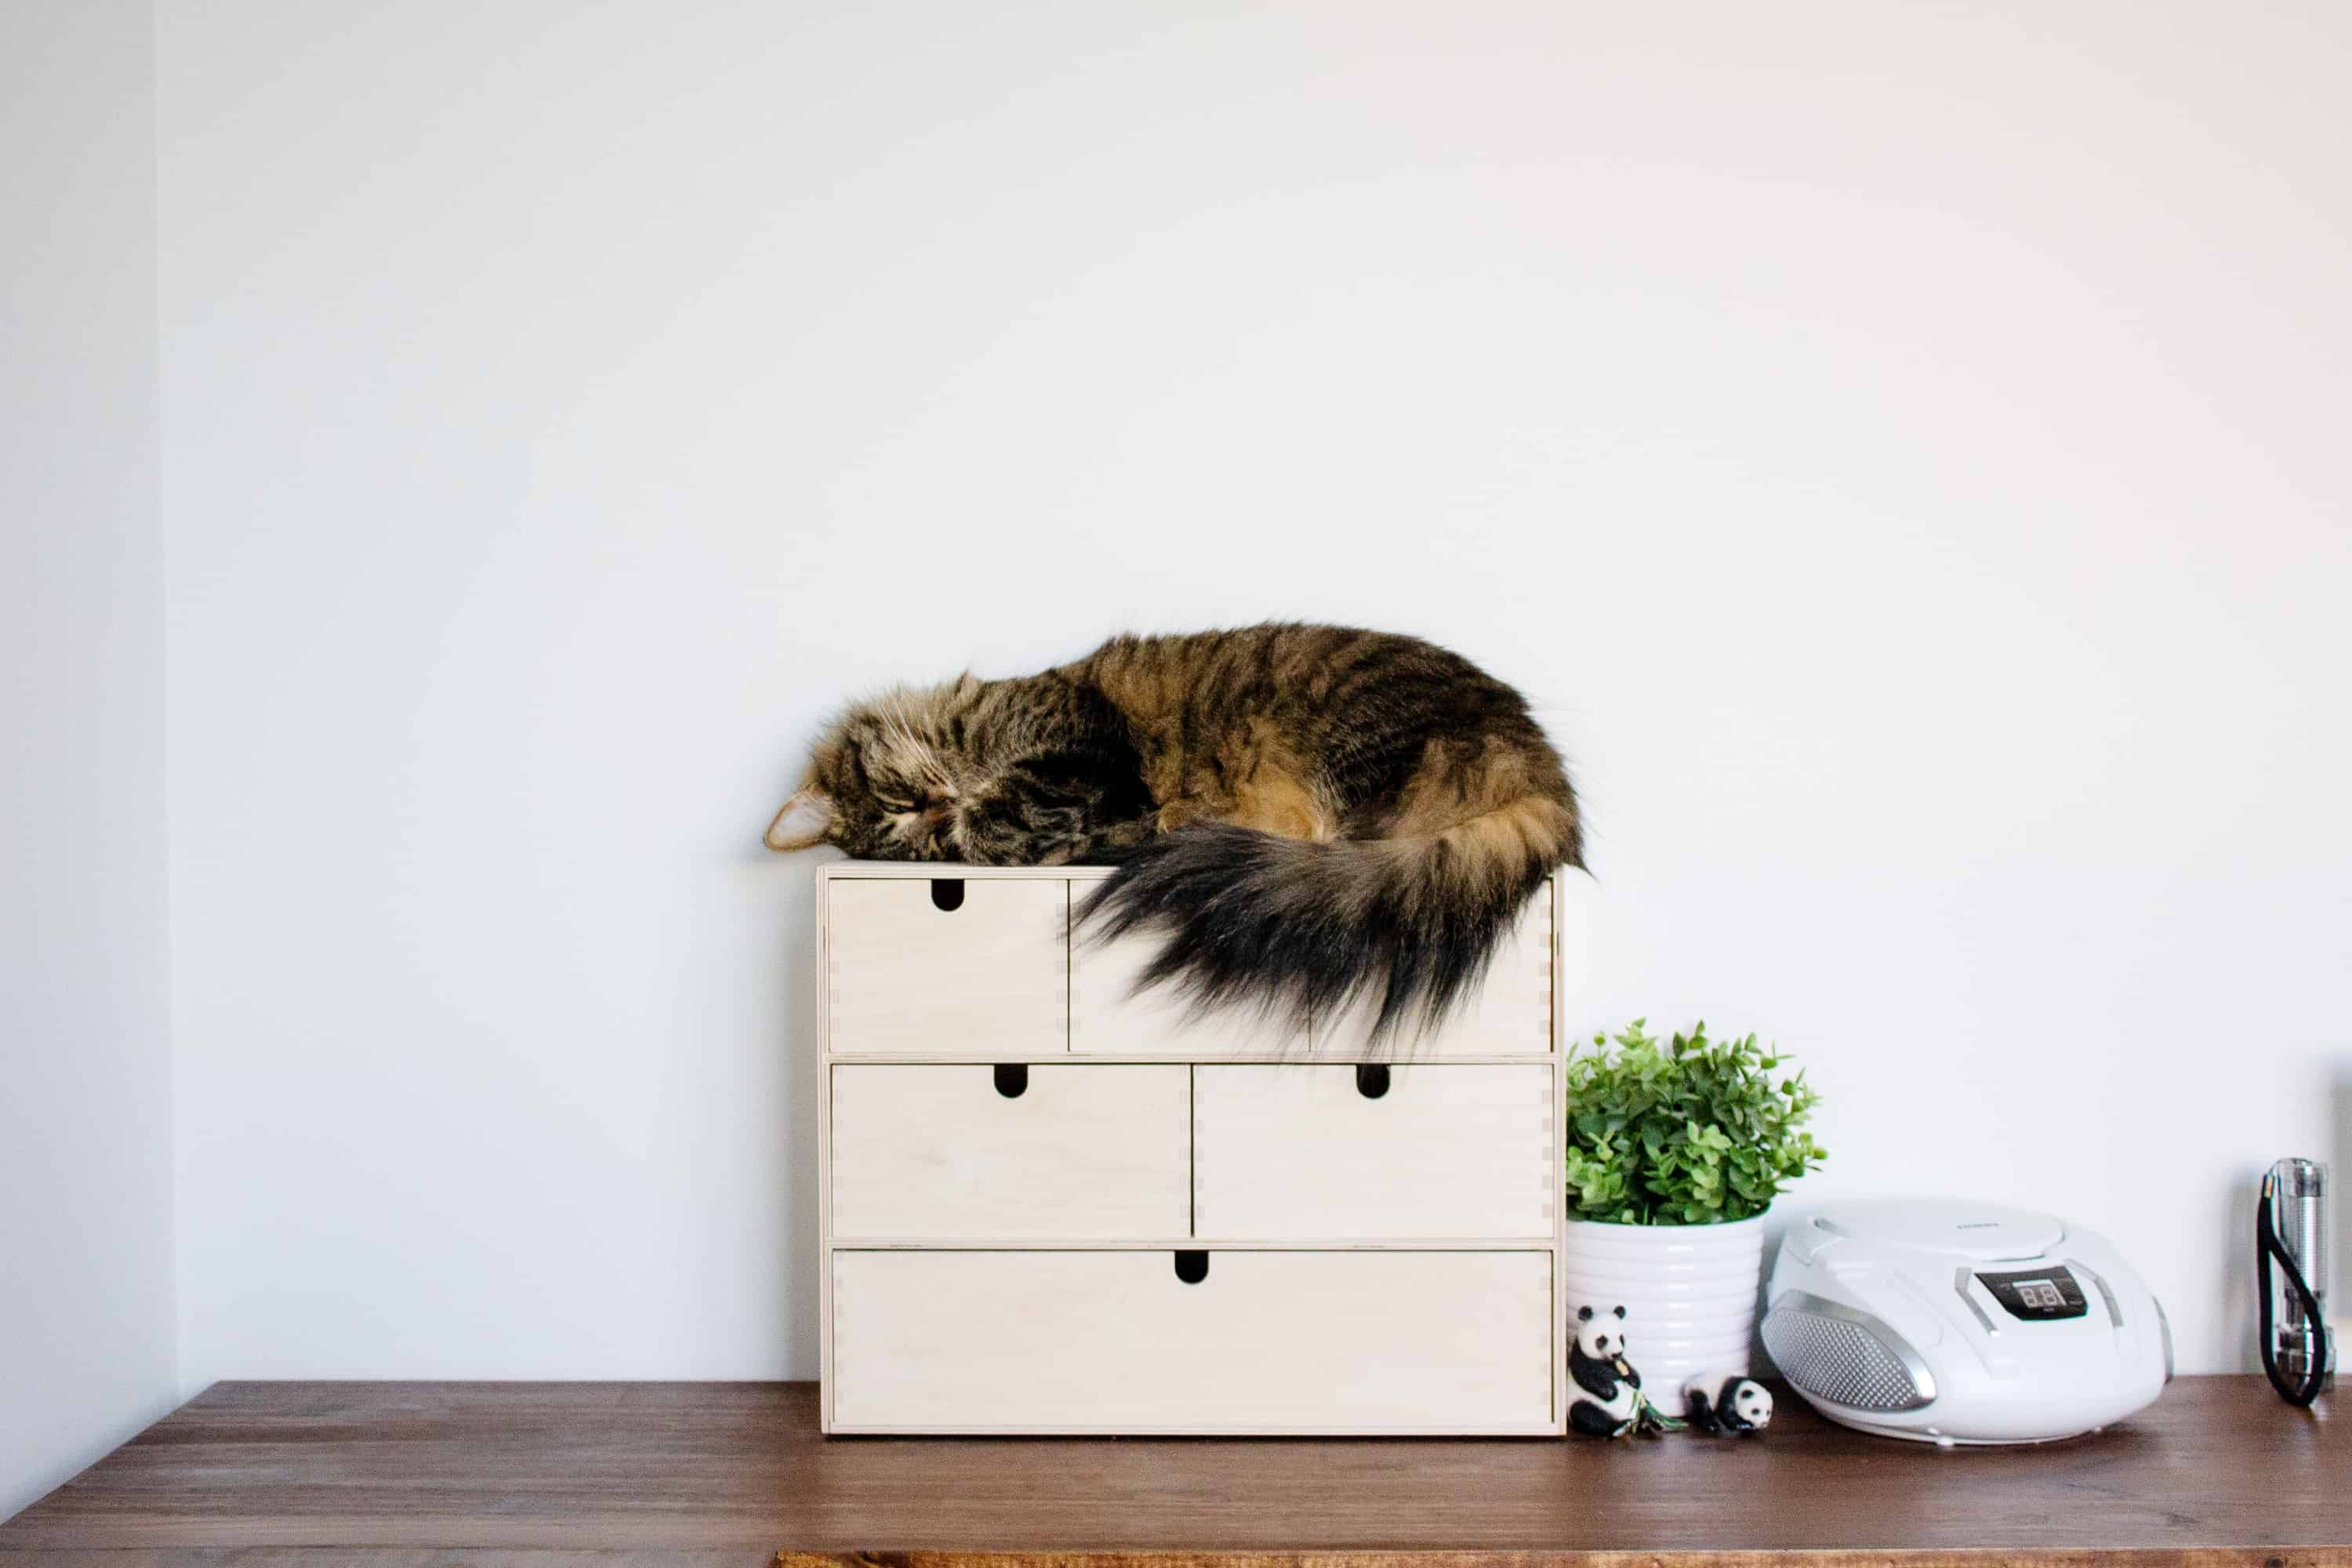 cat sleeping on new corner IKEA hack desktop in homeschool room